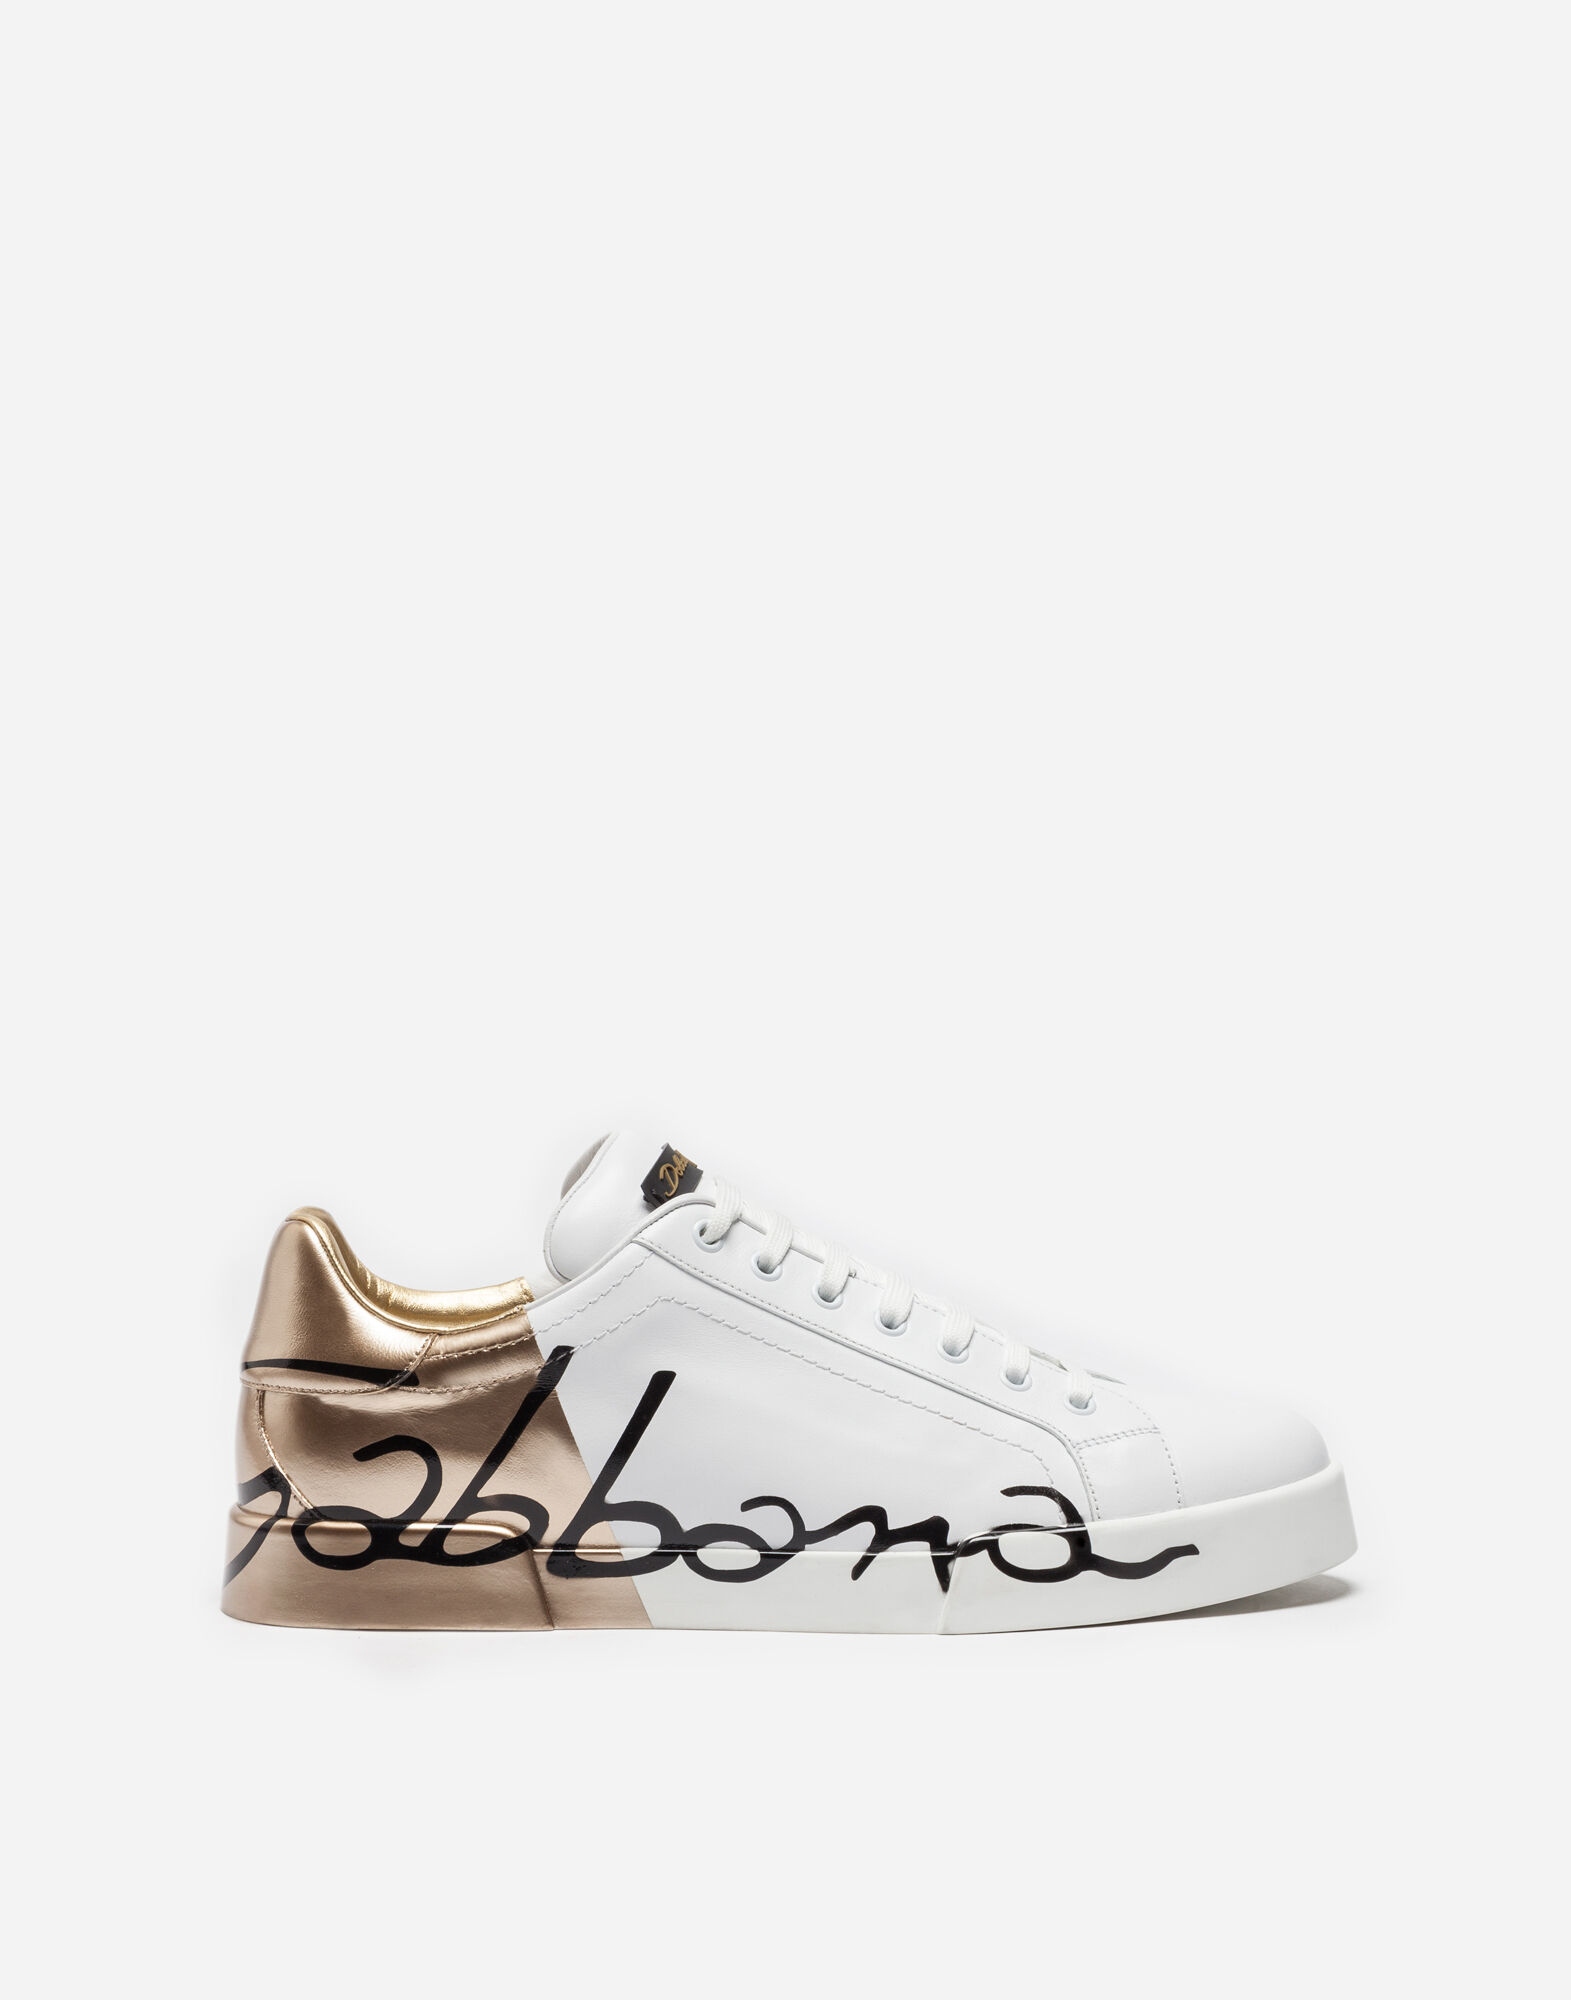 dolce gabbana portofino sneakers in leather and patent. Black Bedroom Furniture Sets. Home Design Ideas